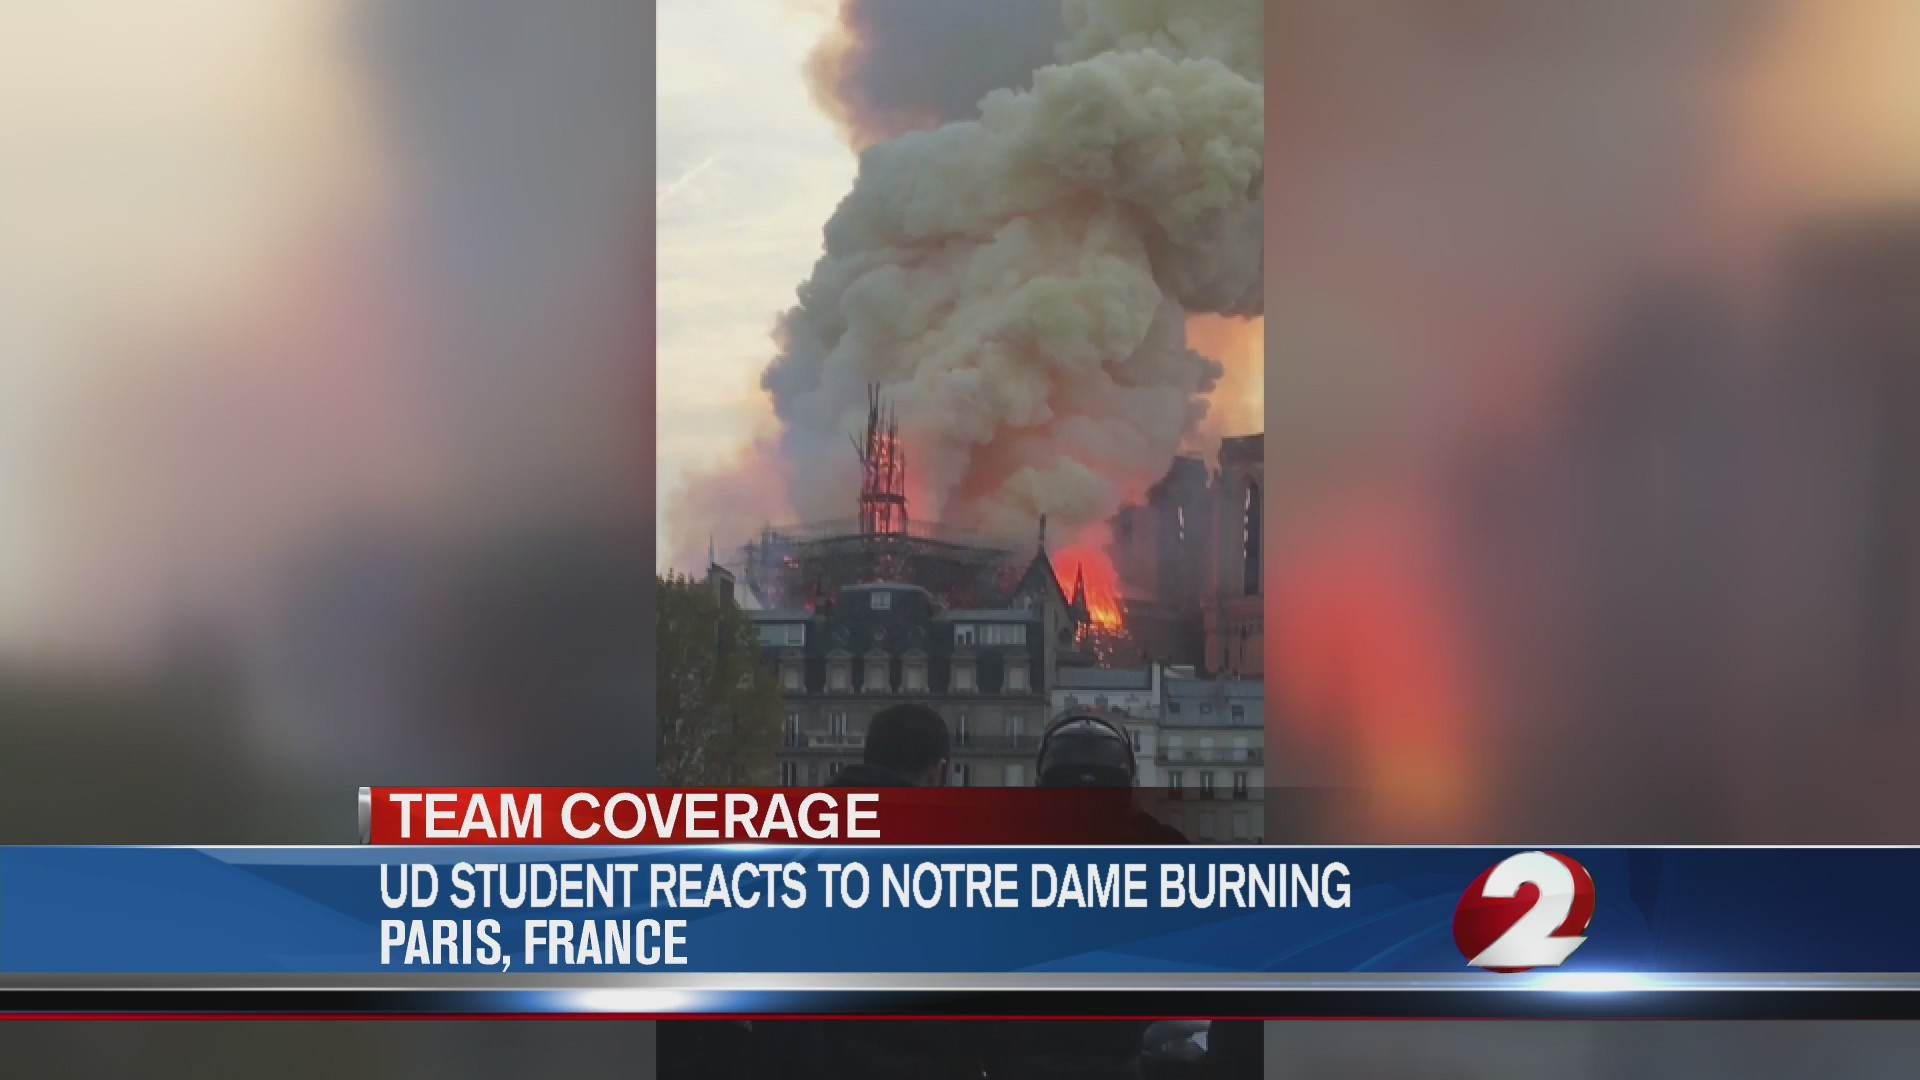 UD student reacts to Notre Dame burning